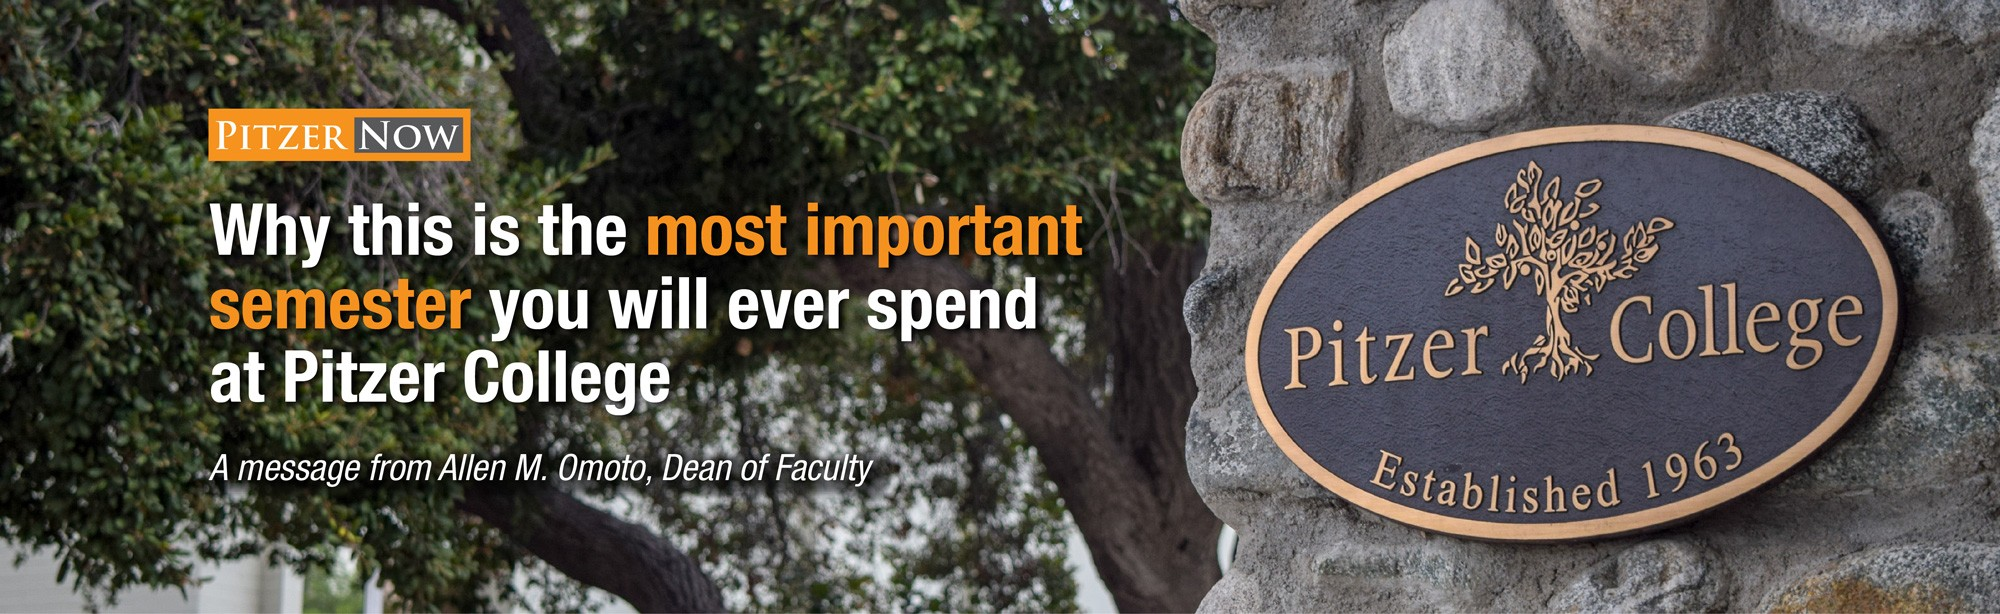 Pitzer Now: Why this is the most important semester you will ever spend at Pitzer College.